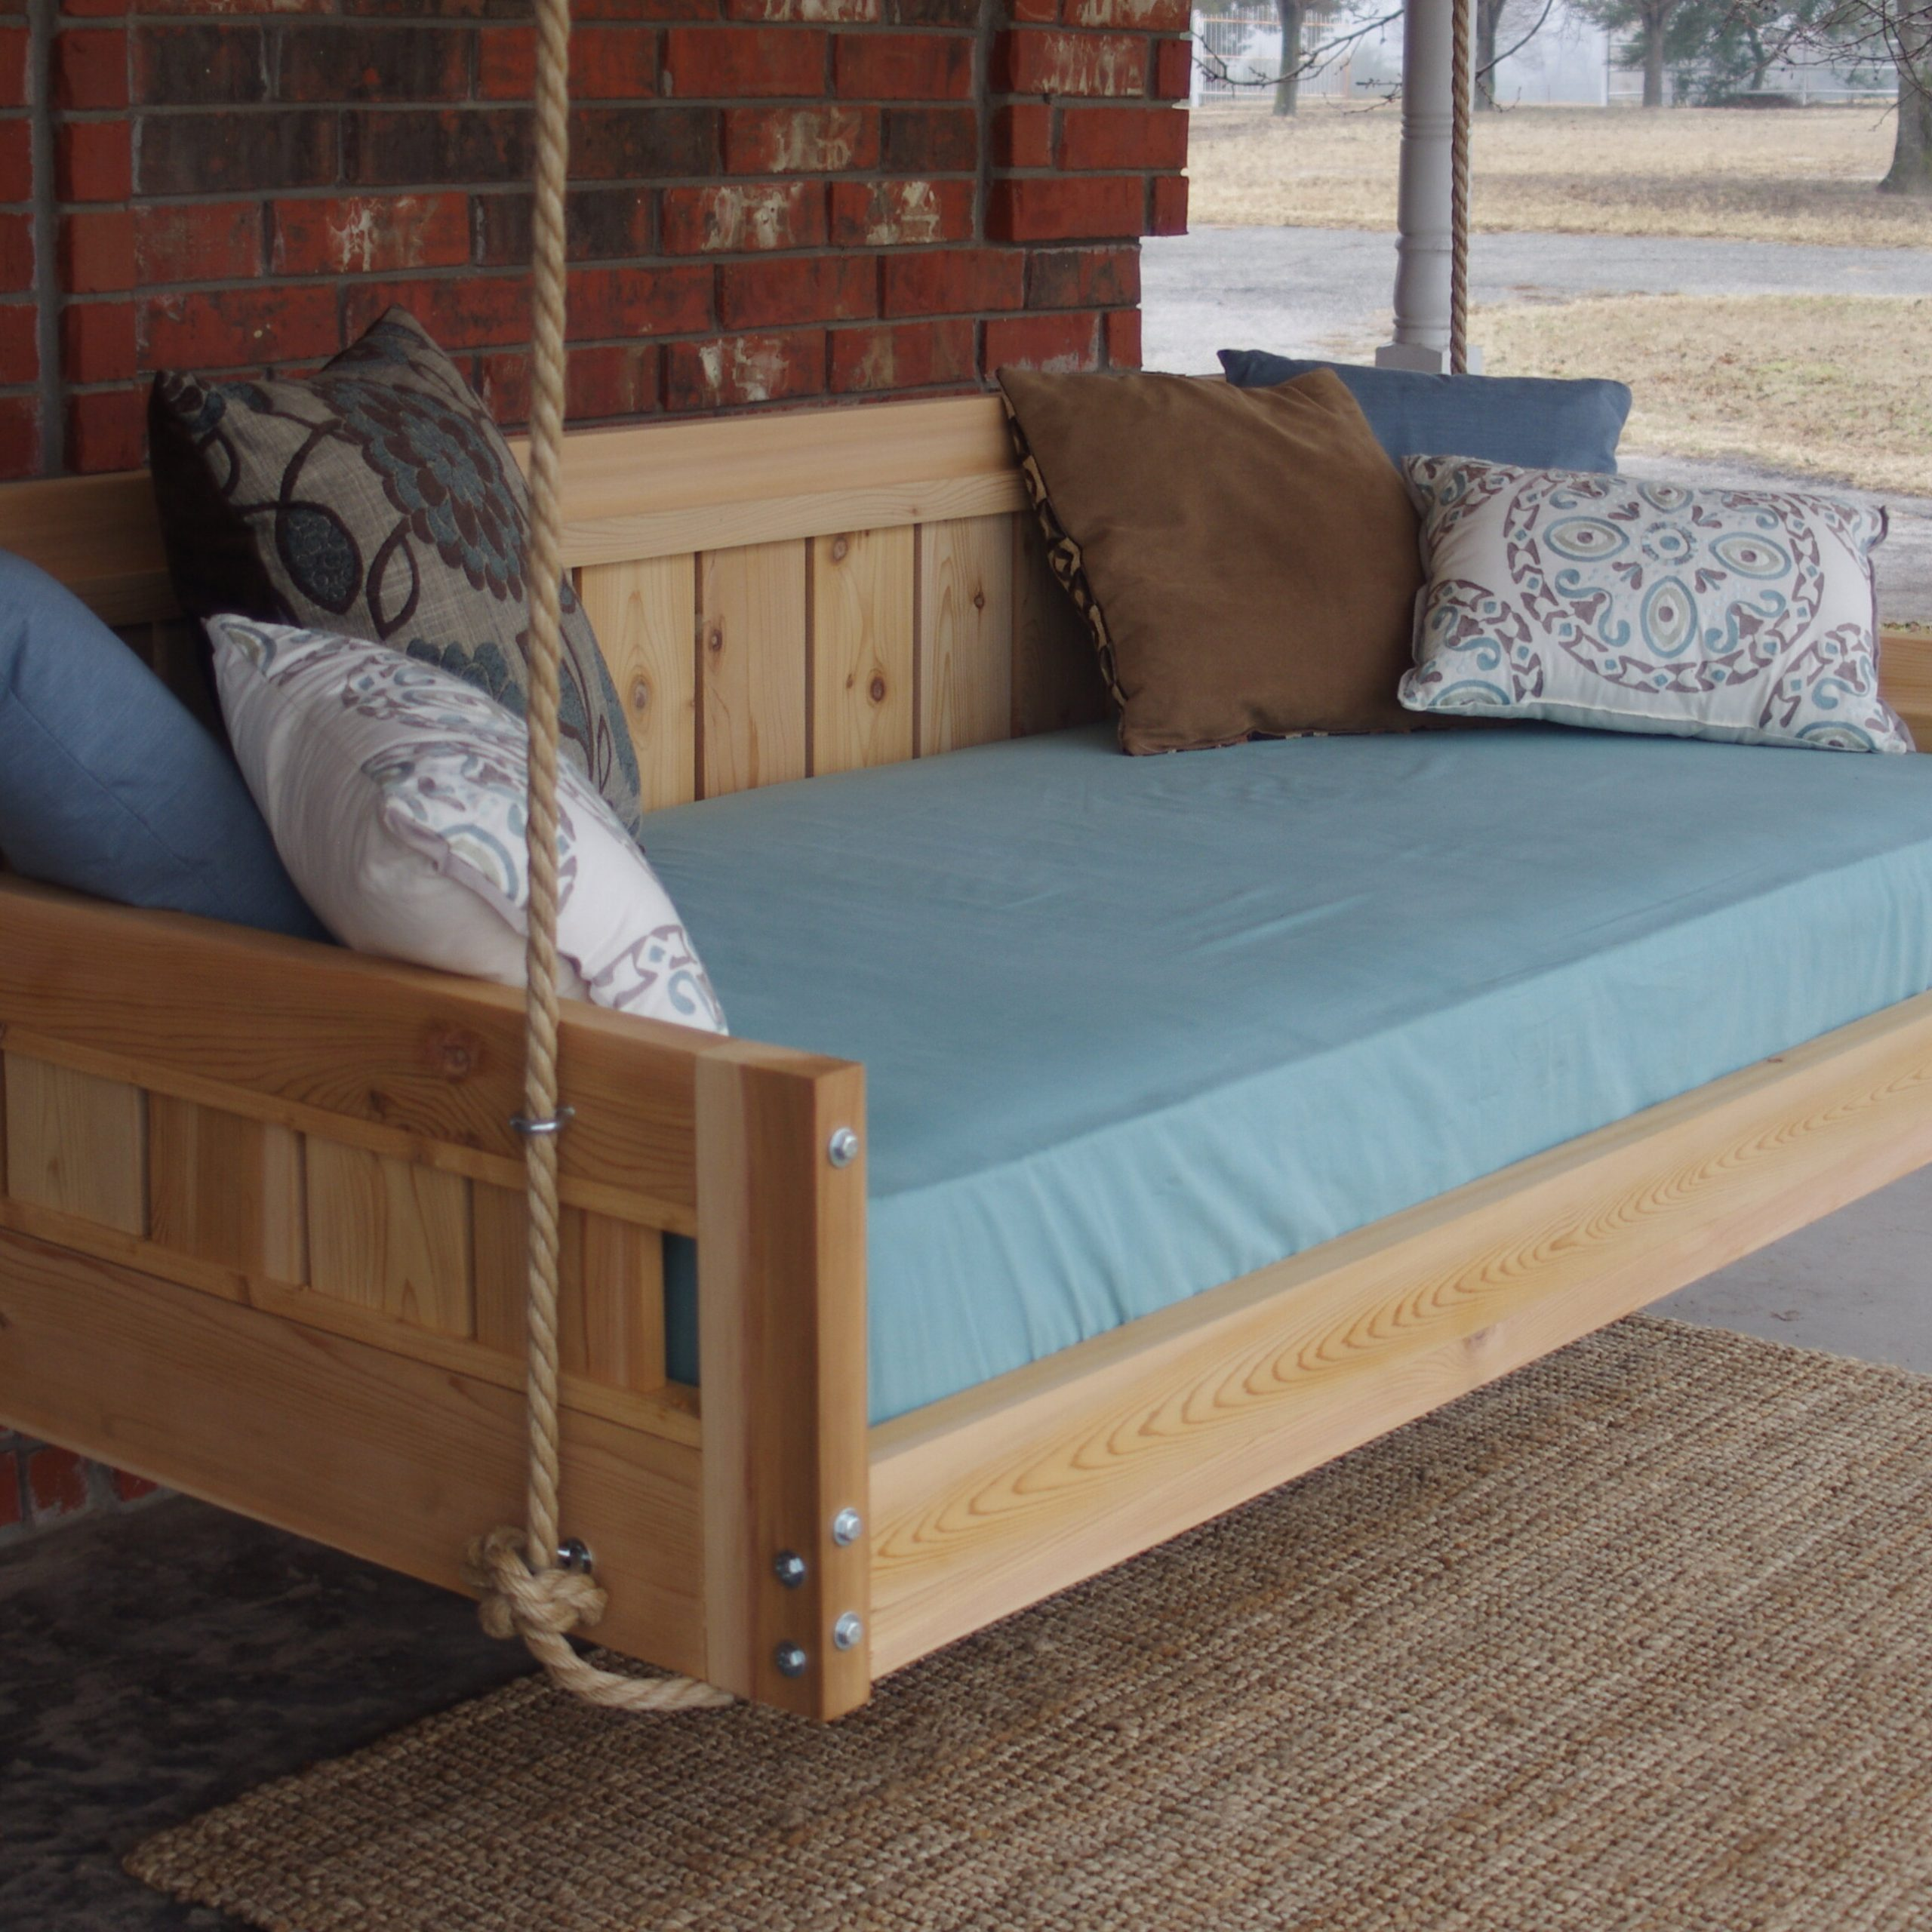 Conyers Hanging Daybed Rope Porch Swing With Regard To Fashionable Hanging Daybed Rope Porch Swings (Gallery 9 of 30)